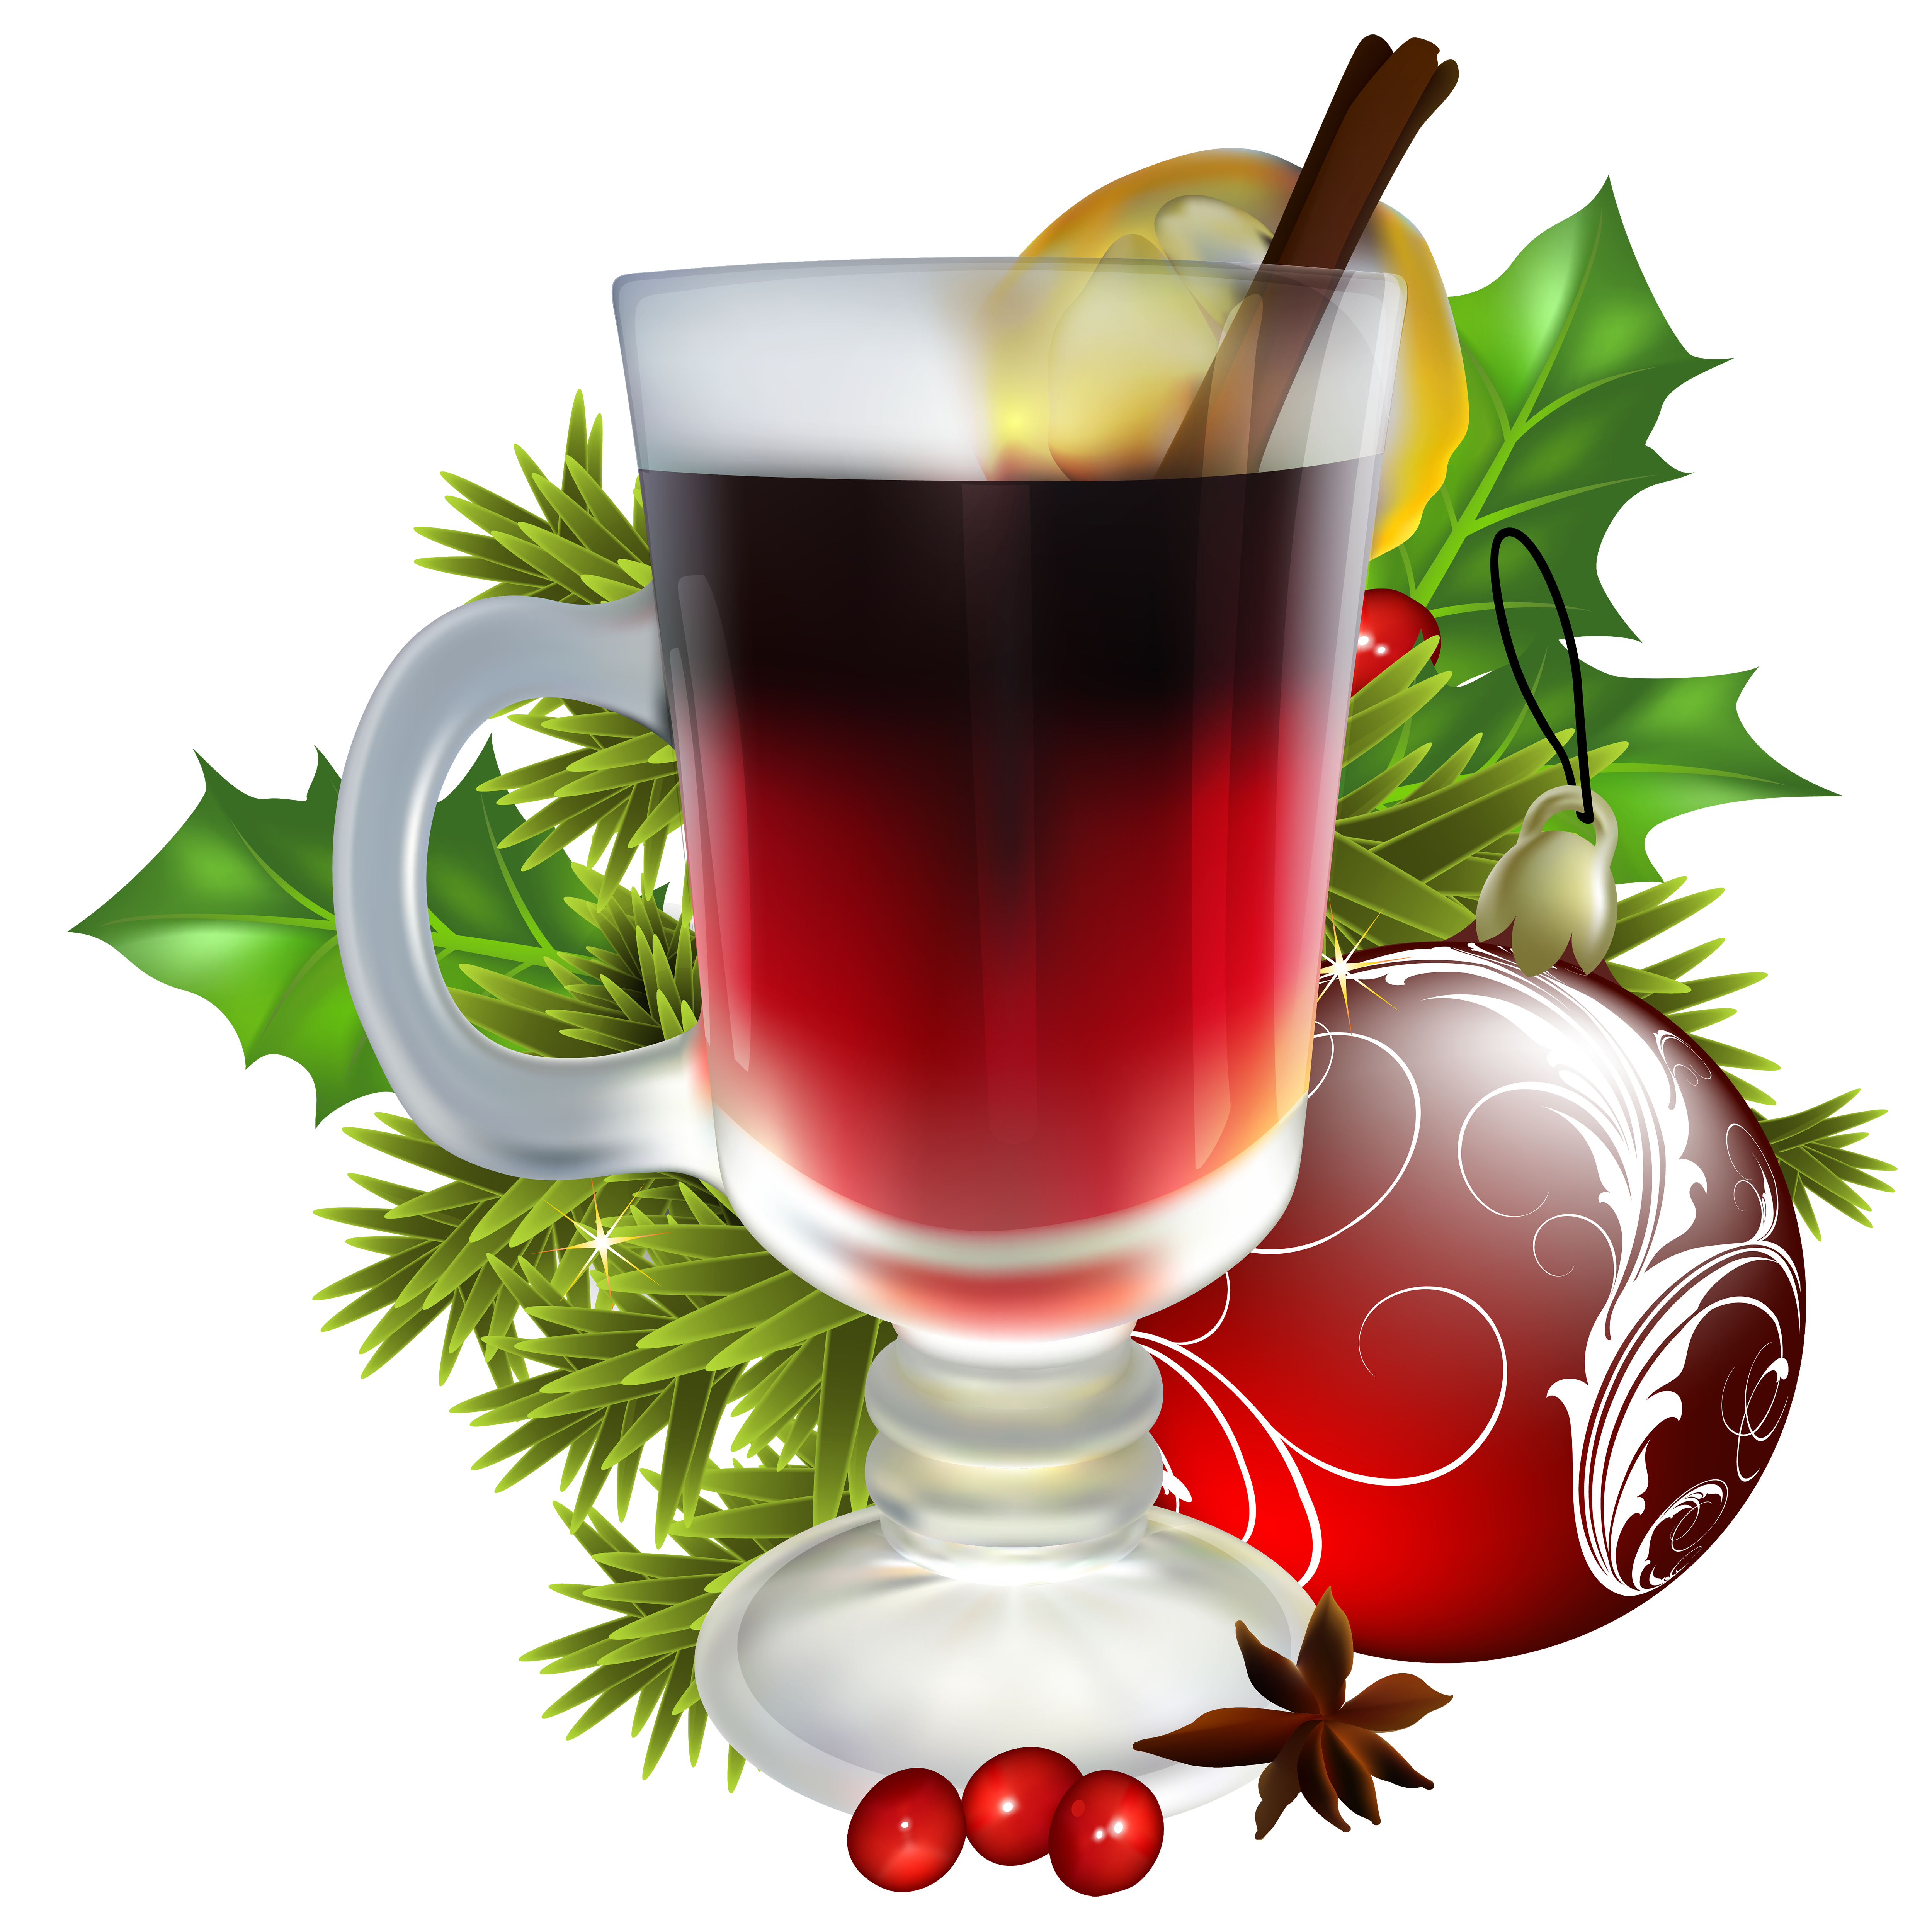 Drink clipart xmas. Christmas tea with decorations